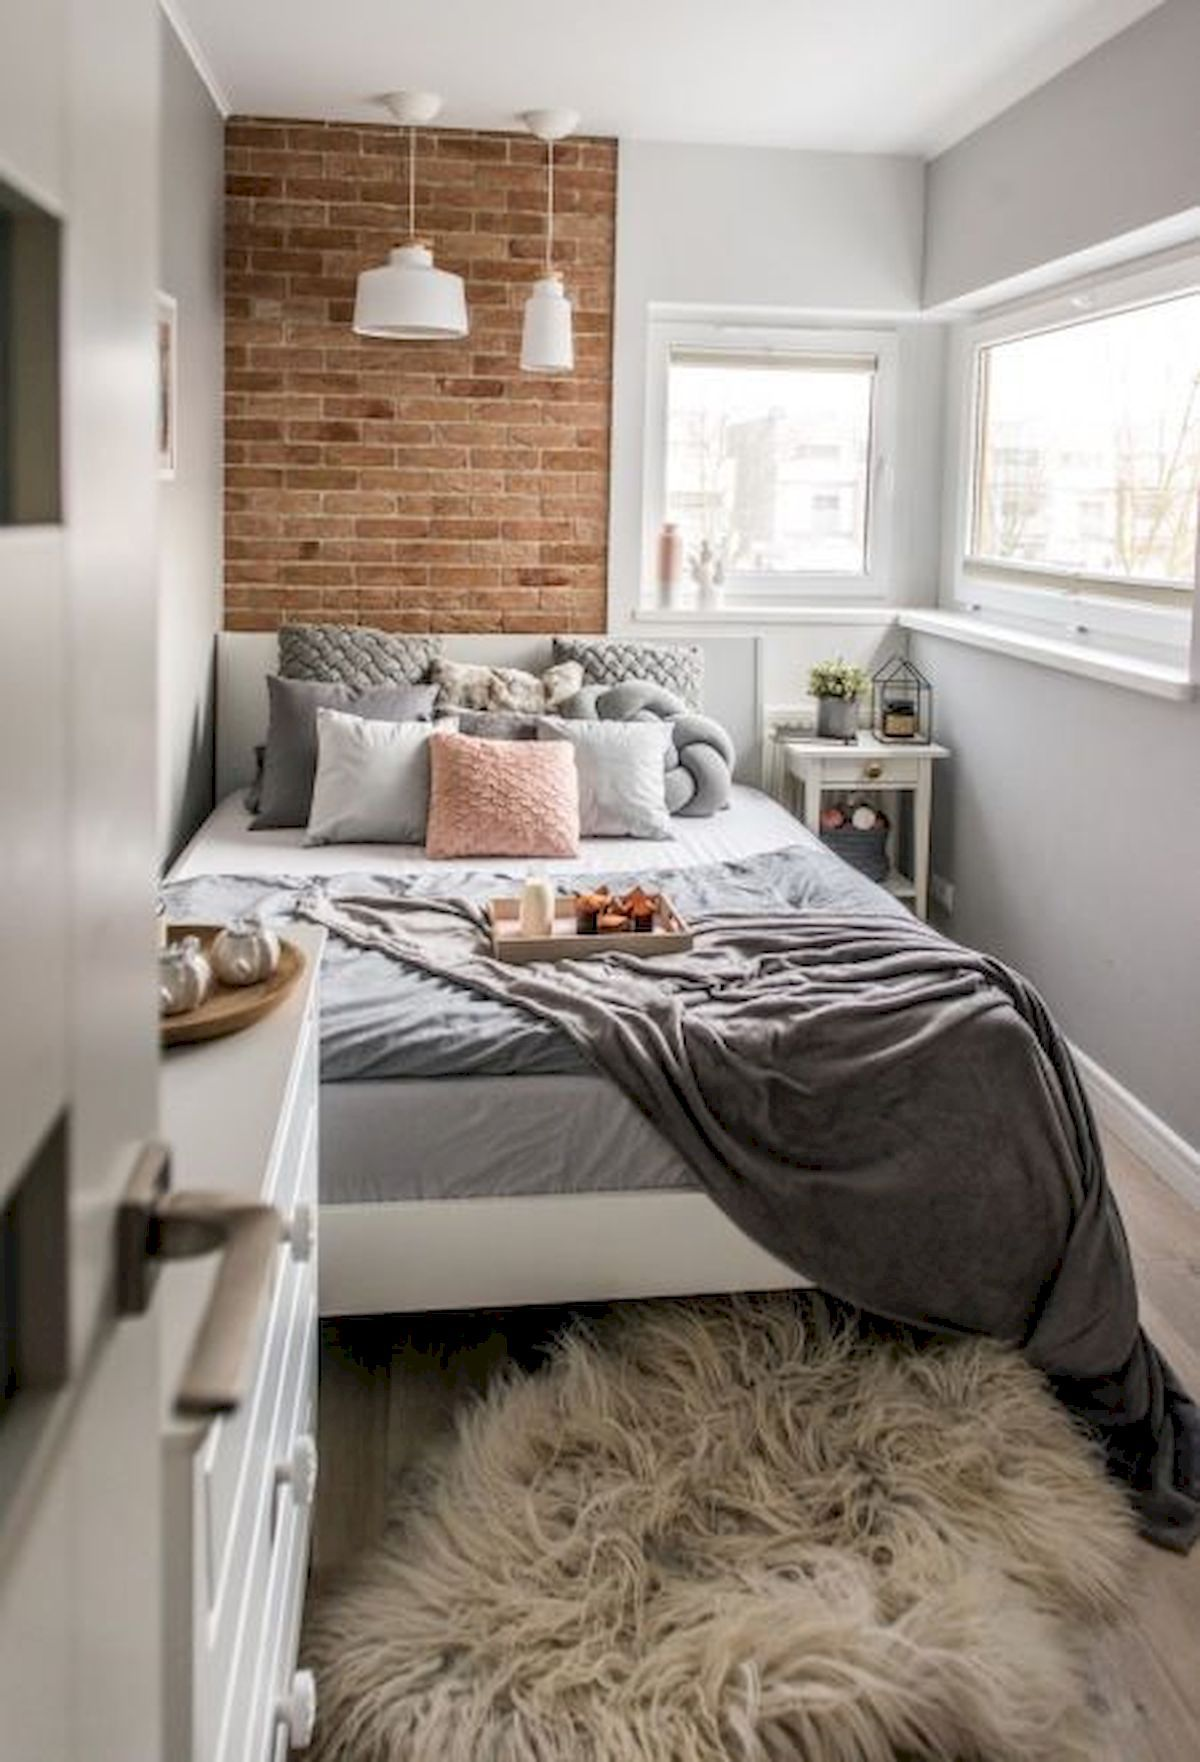 49 Cool Small Bedroom Ideas That Perfect For Small Home